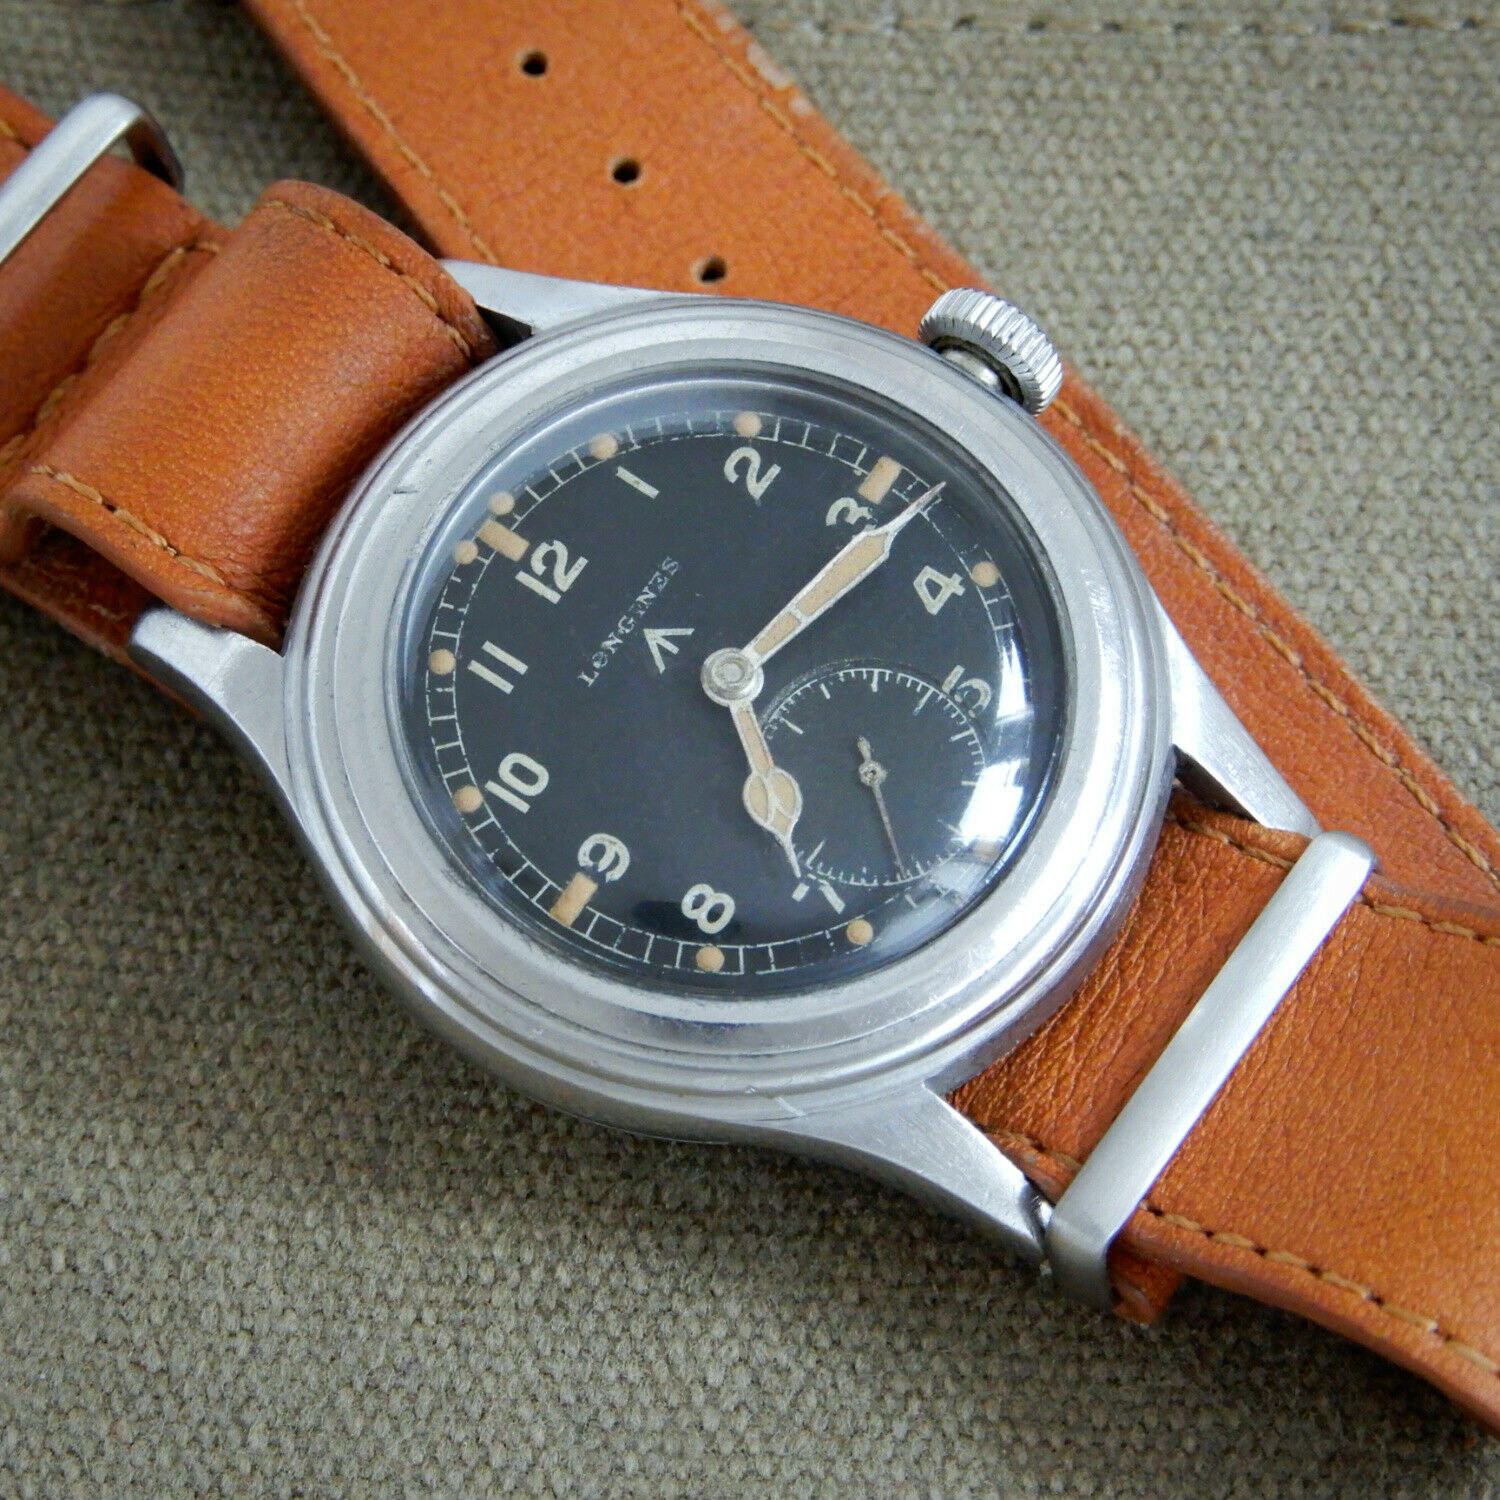 Longines Greenlander Military 12.68z Dirty Dozen Watch ALL ORIGINAL + Extract - watch picture 1